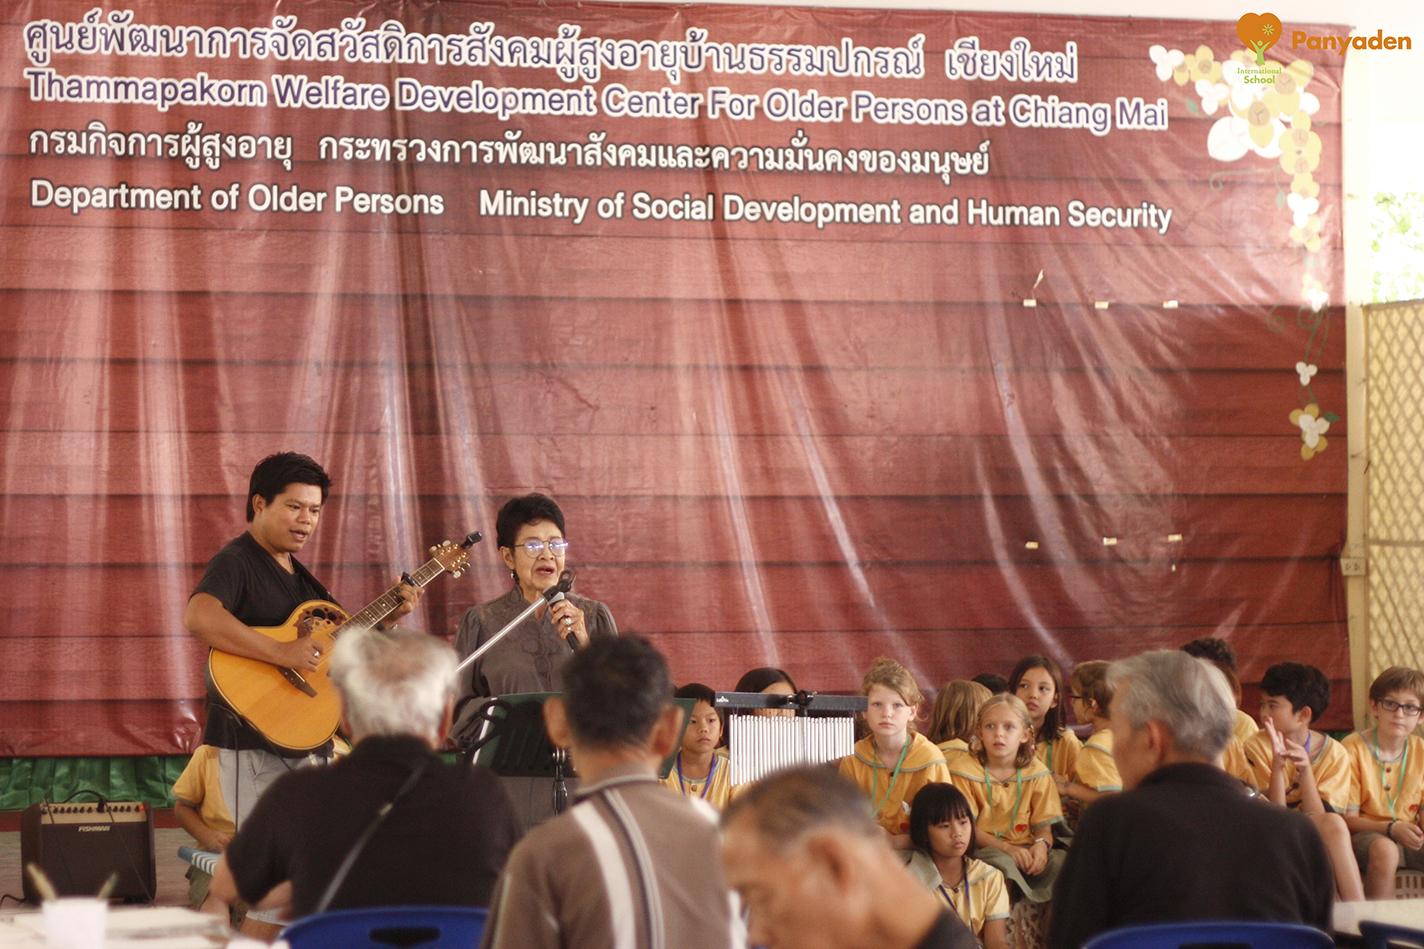 Music time! Panyaden Year 3 and 6 Social Contribution Day at elder aId home in Chiang Mai